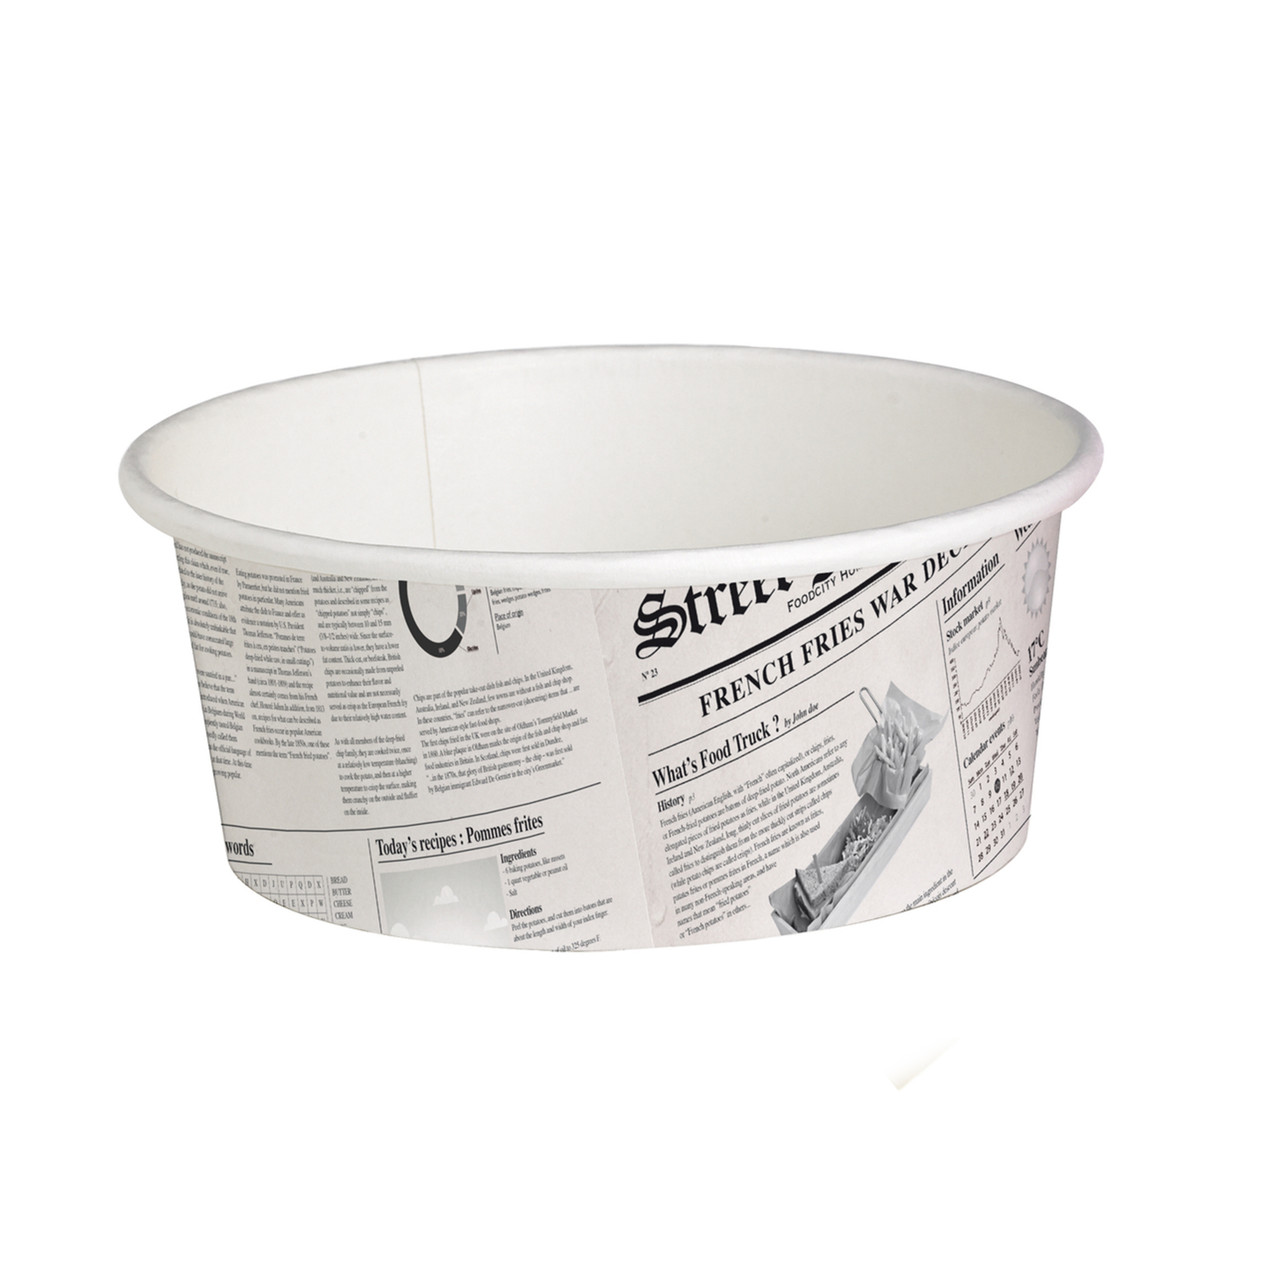 Deli News Printed Containers -16oz Dia:4.4in H:2.8in